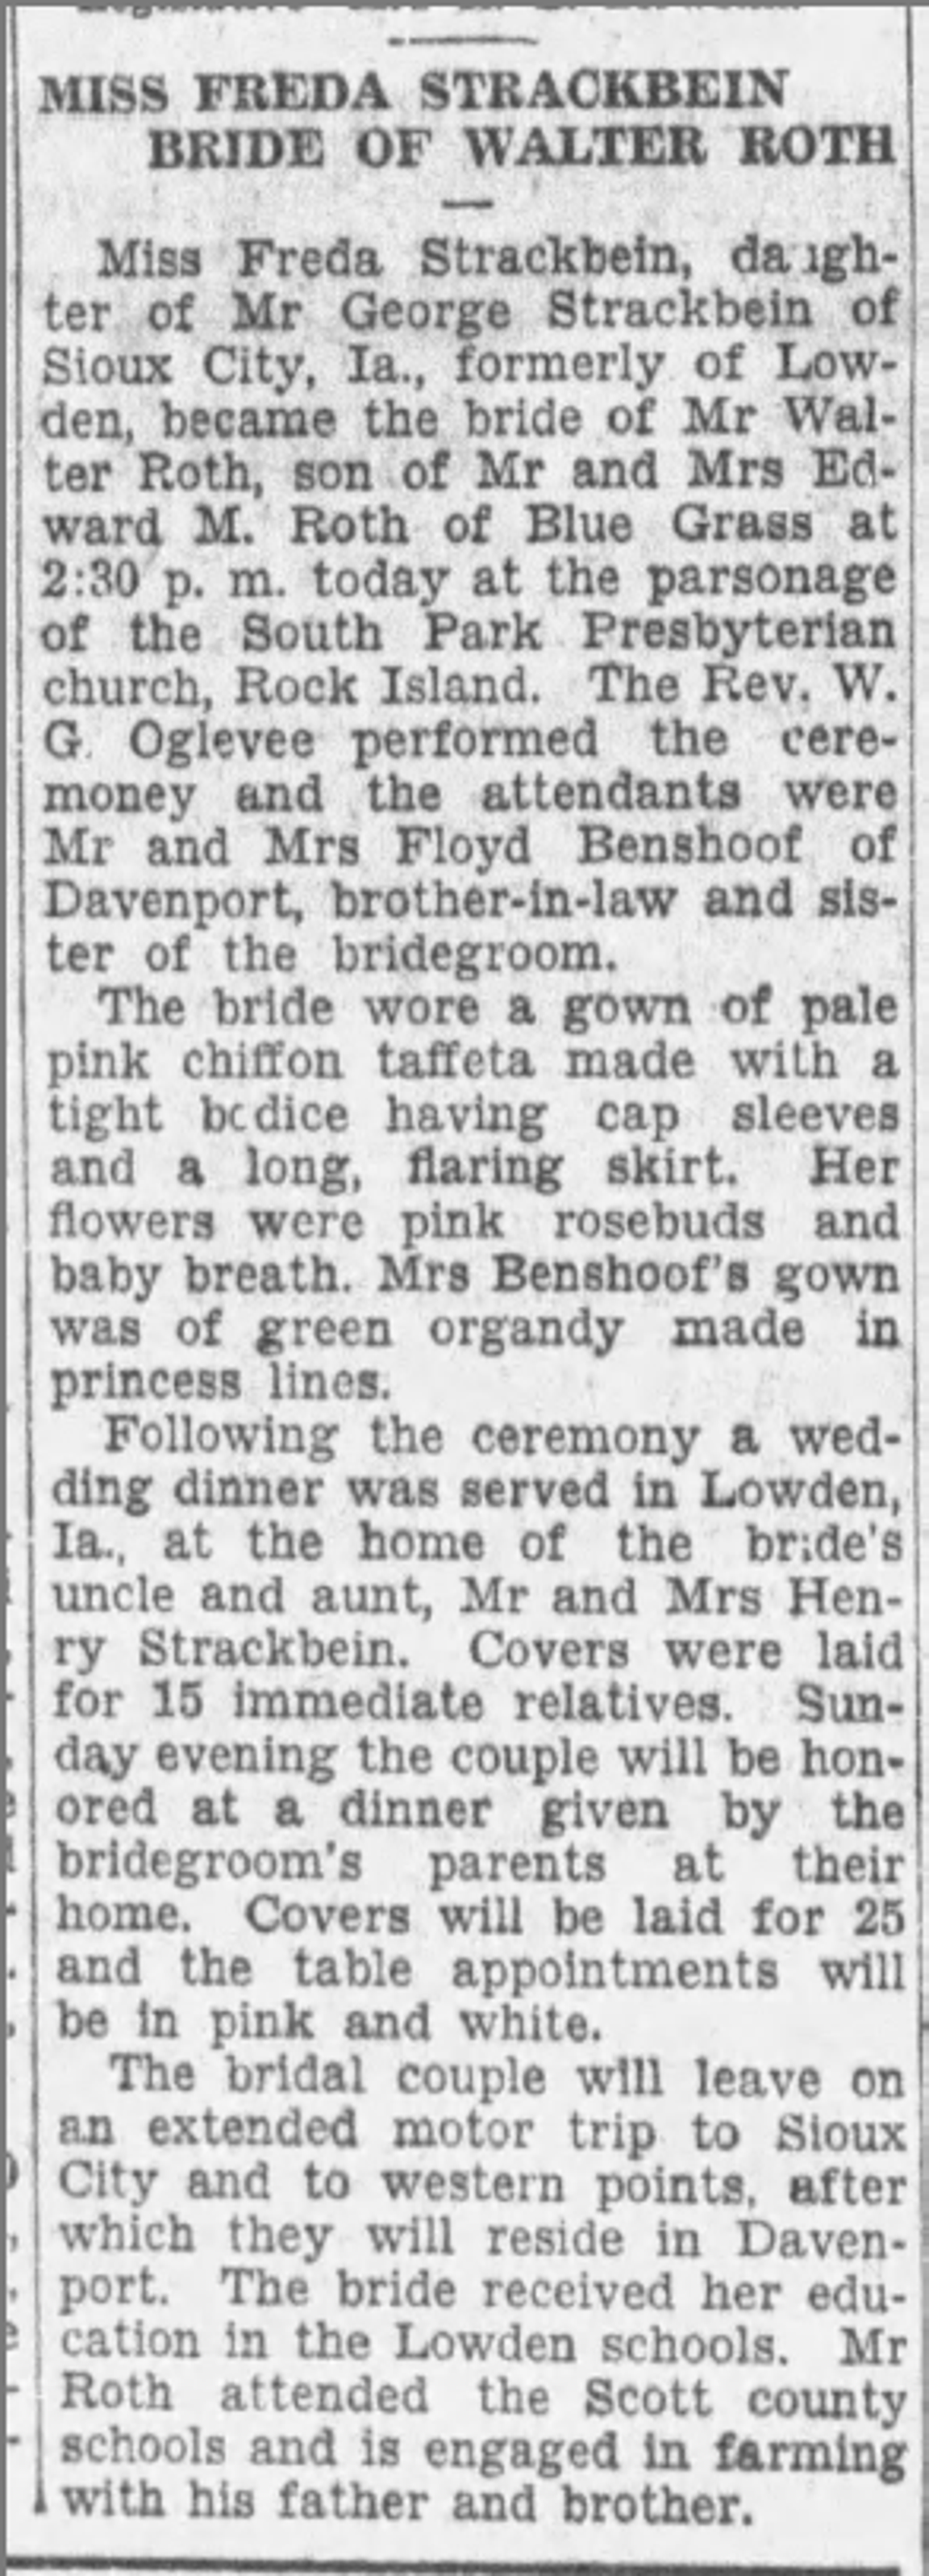 Walter and Freda's wedding announcement in The Daily Times, in Davenport, Iowa, as published on Aug. 1, 1931.